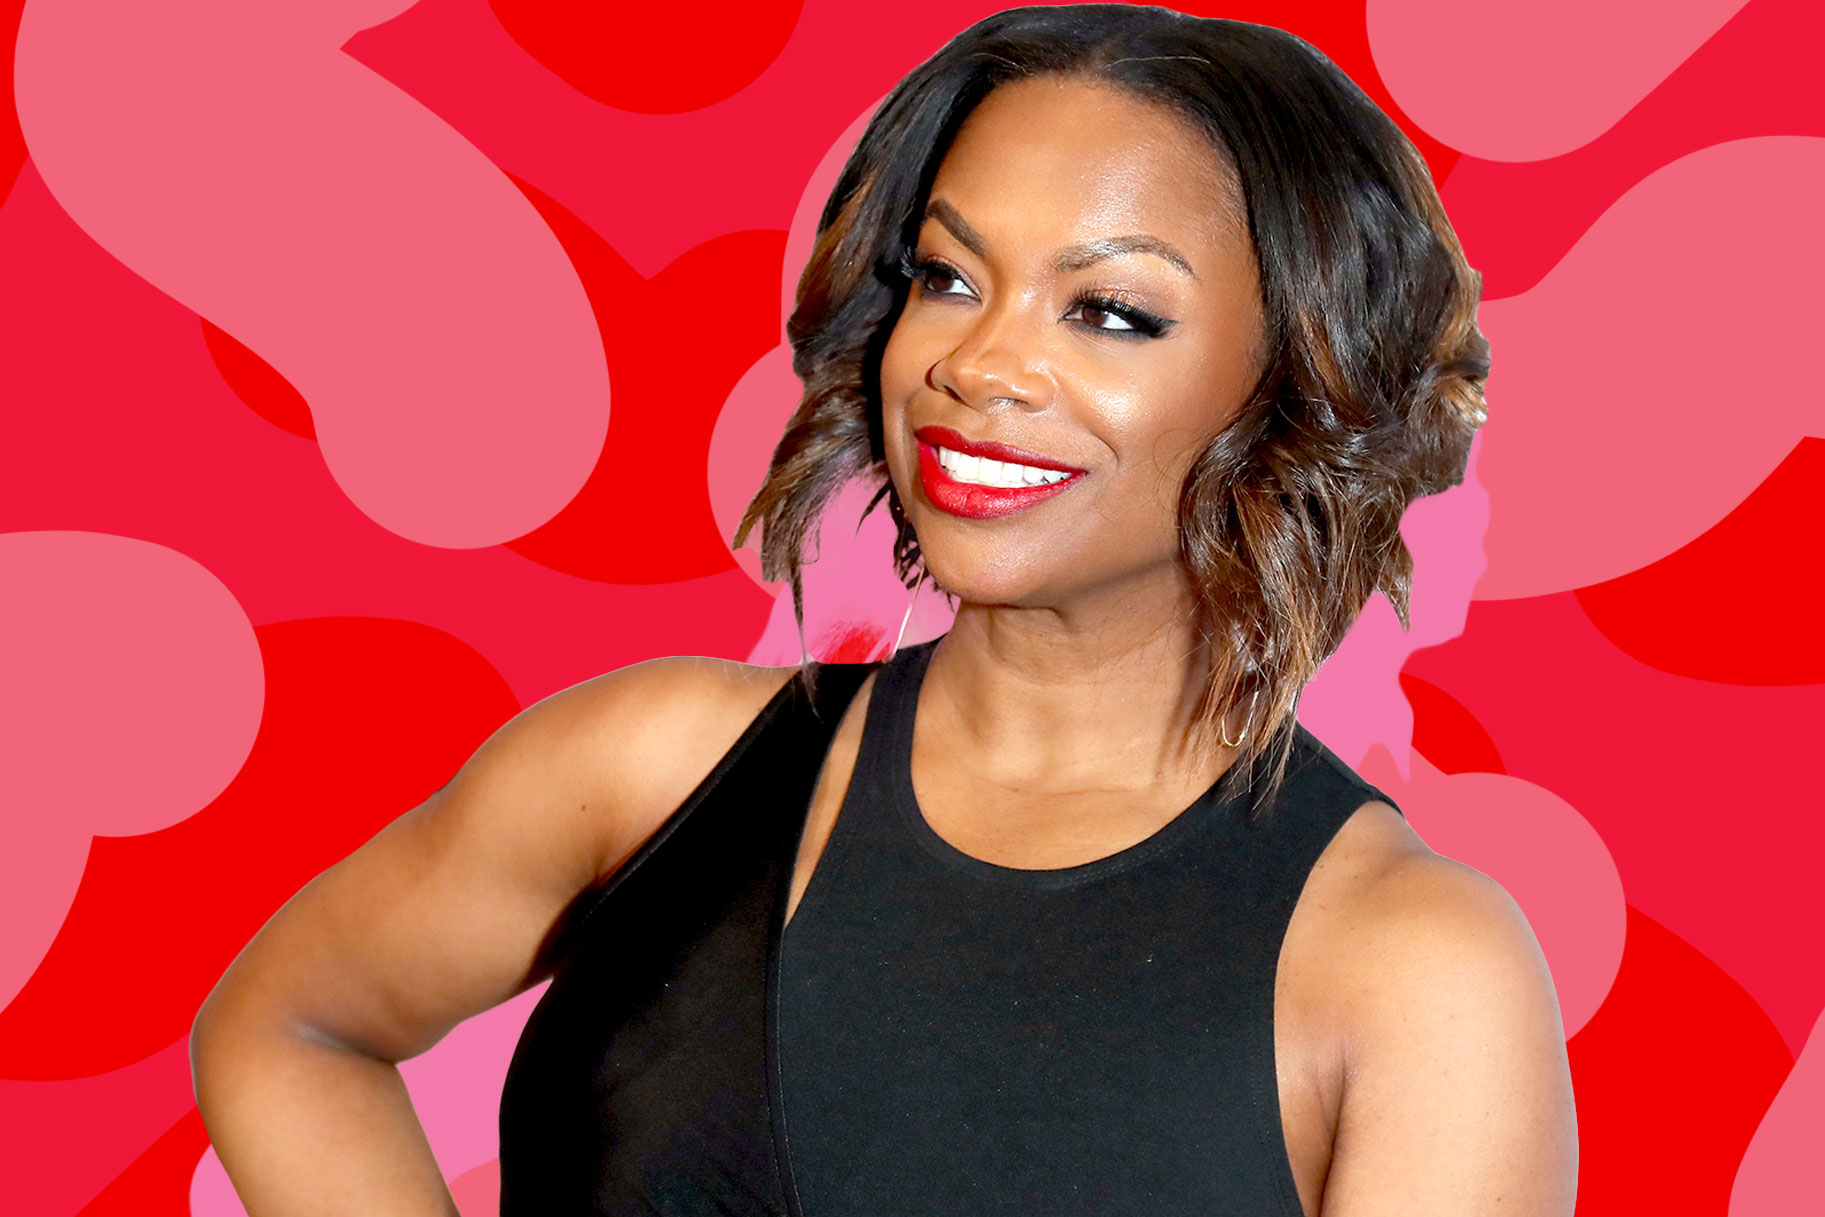 """kandi-burruss-reveals-another-special-guest-on-her-racy-show-after-tamar-braxton"""